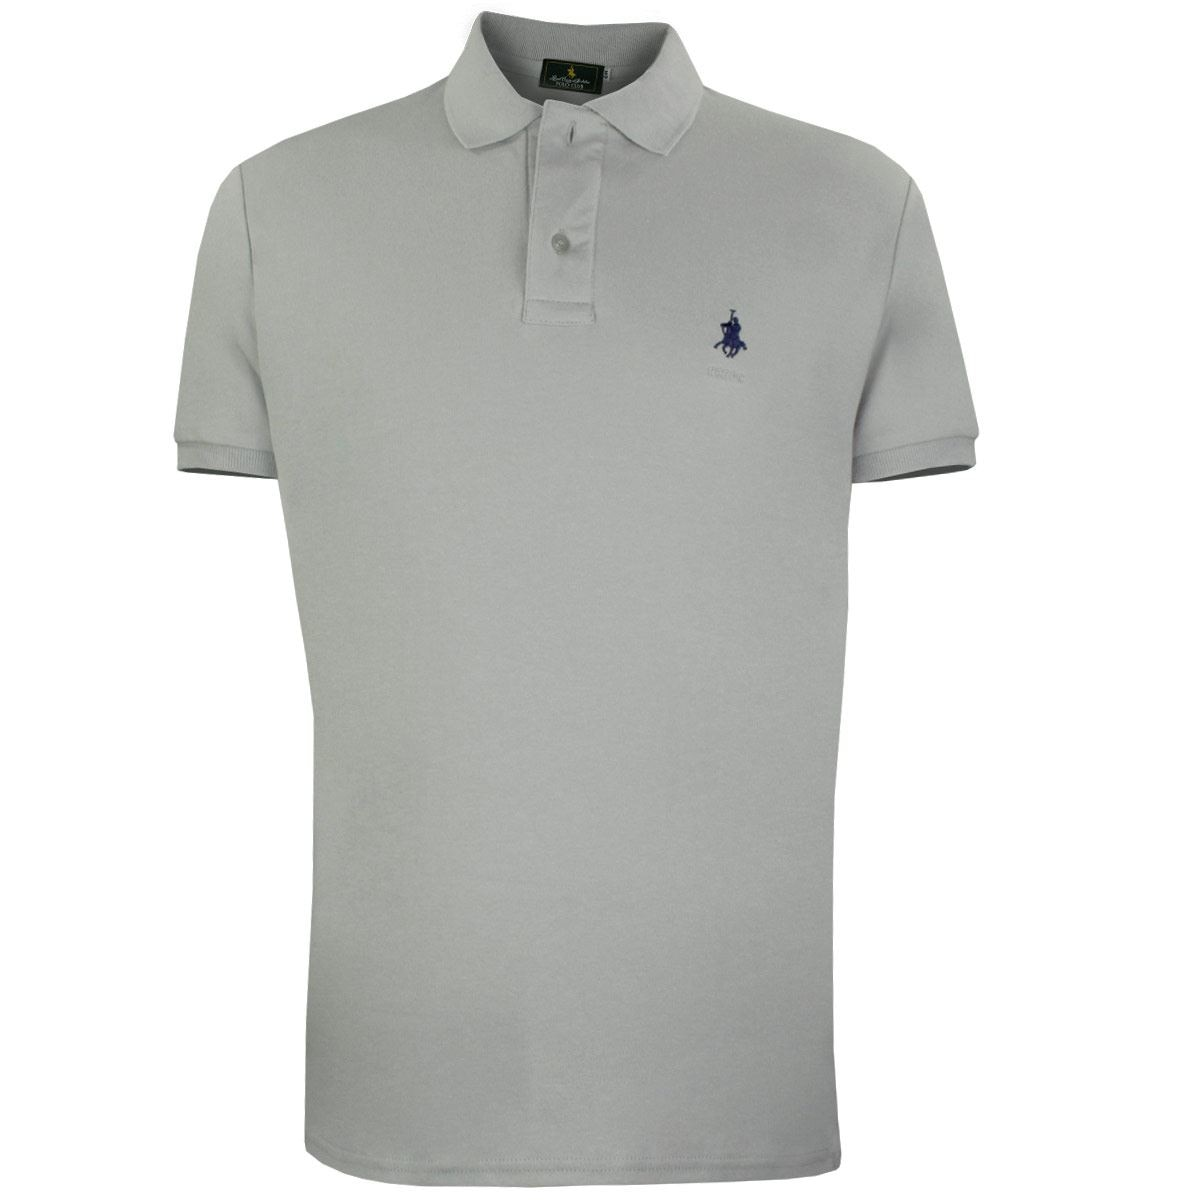 Playera Polo Club Mc Liso Algodón Ch Gris